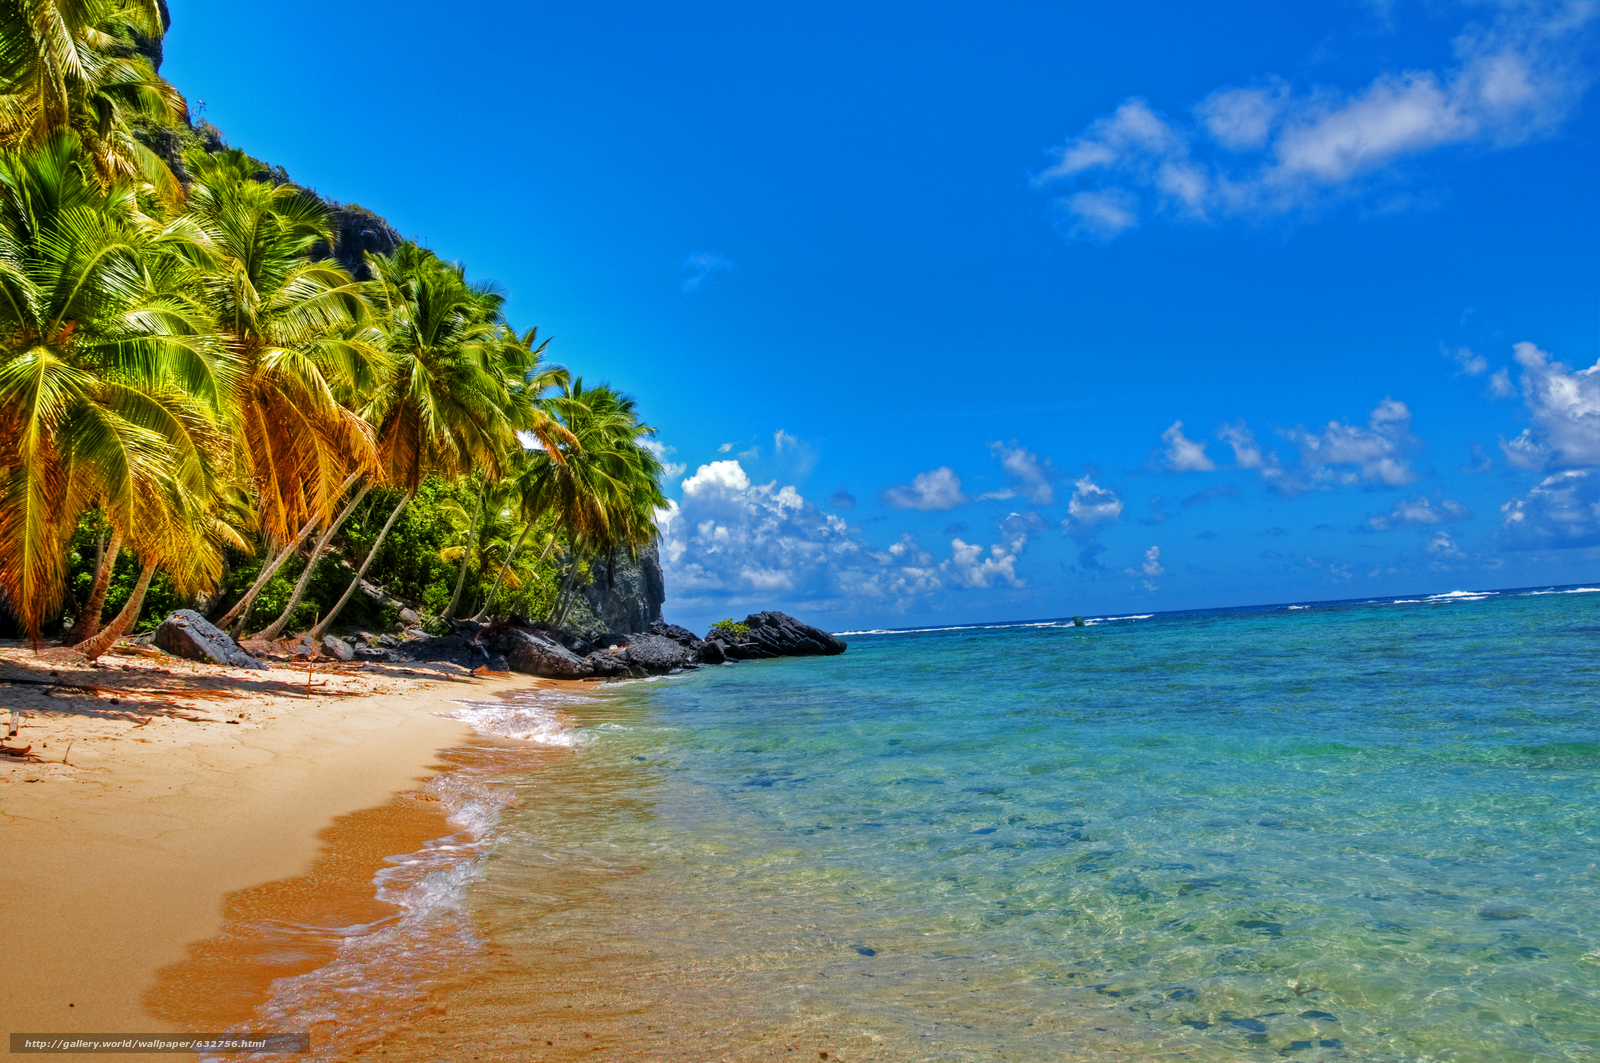 Download wallpaper playa fronton samana the dominican - Dominican republic wallpaper ...